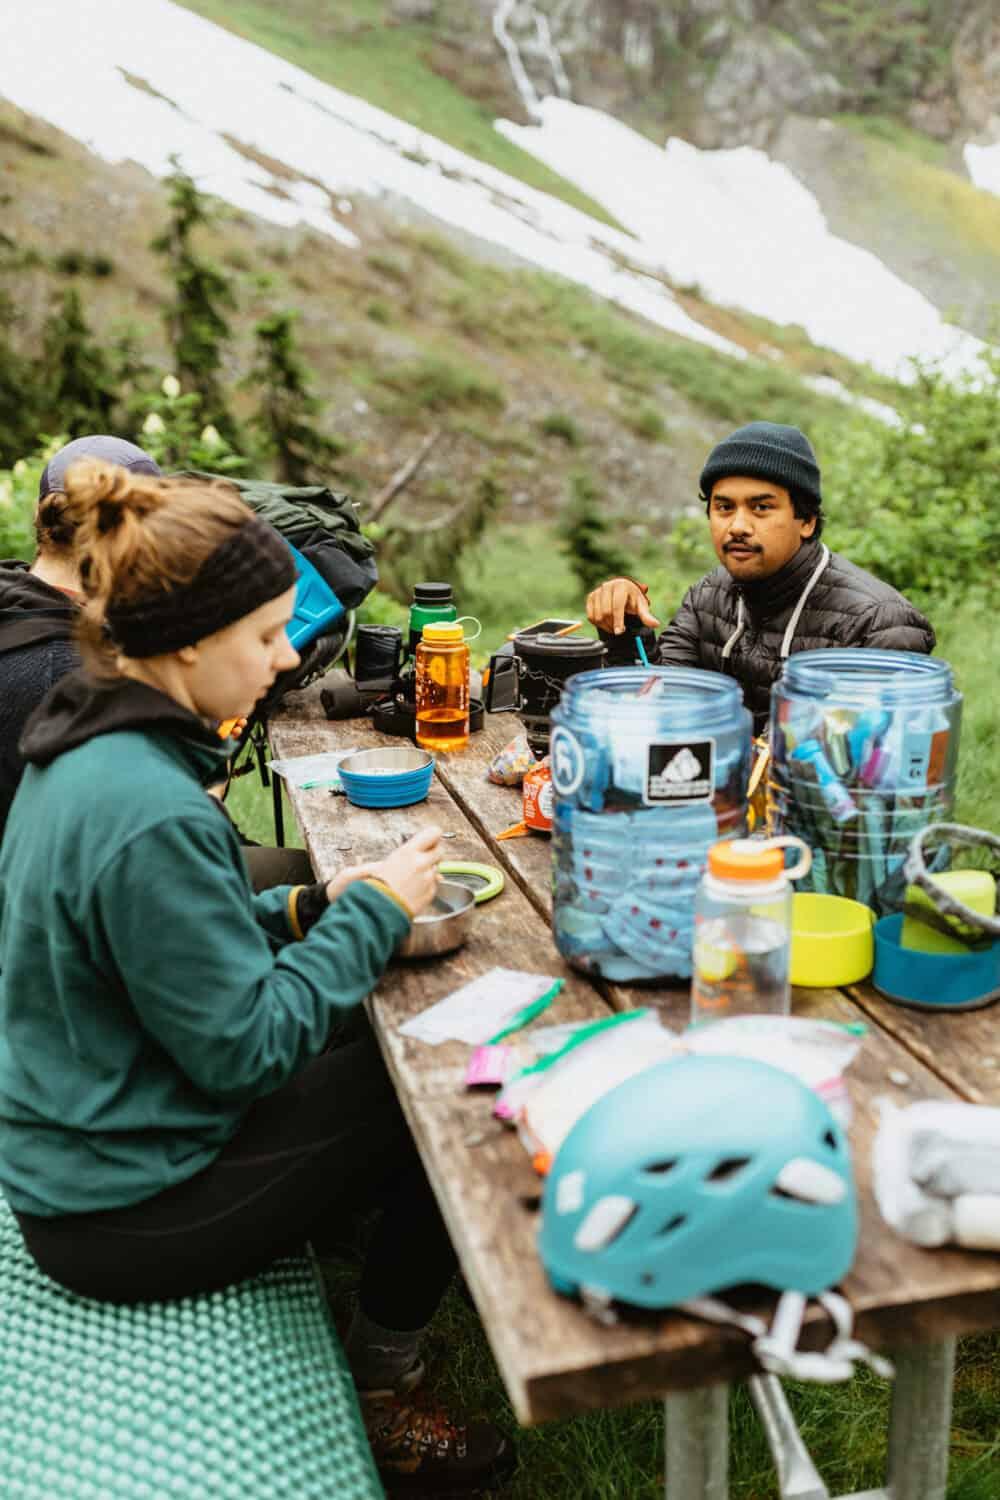 Berty eating breakfast in the backcountry